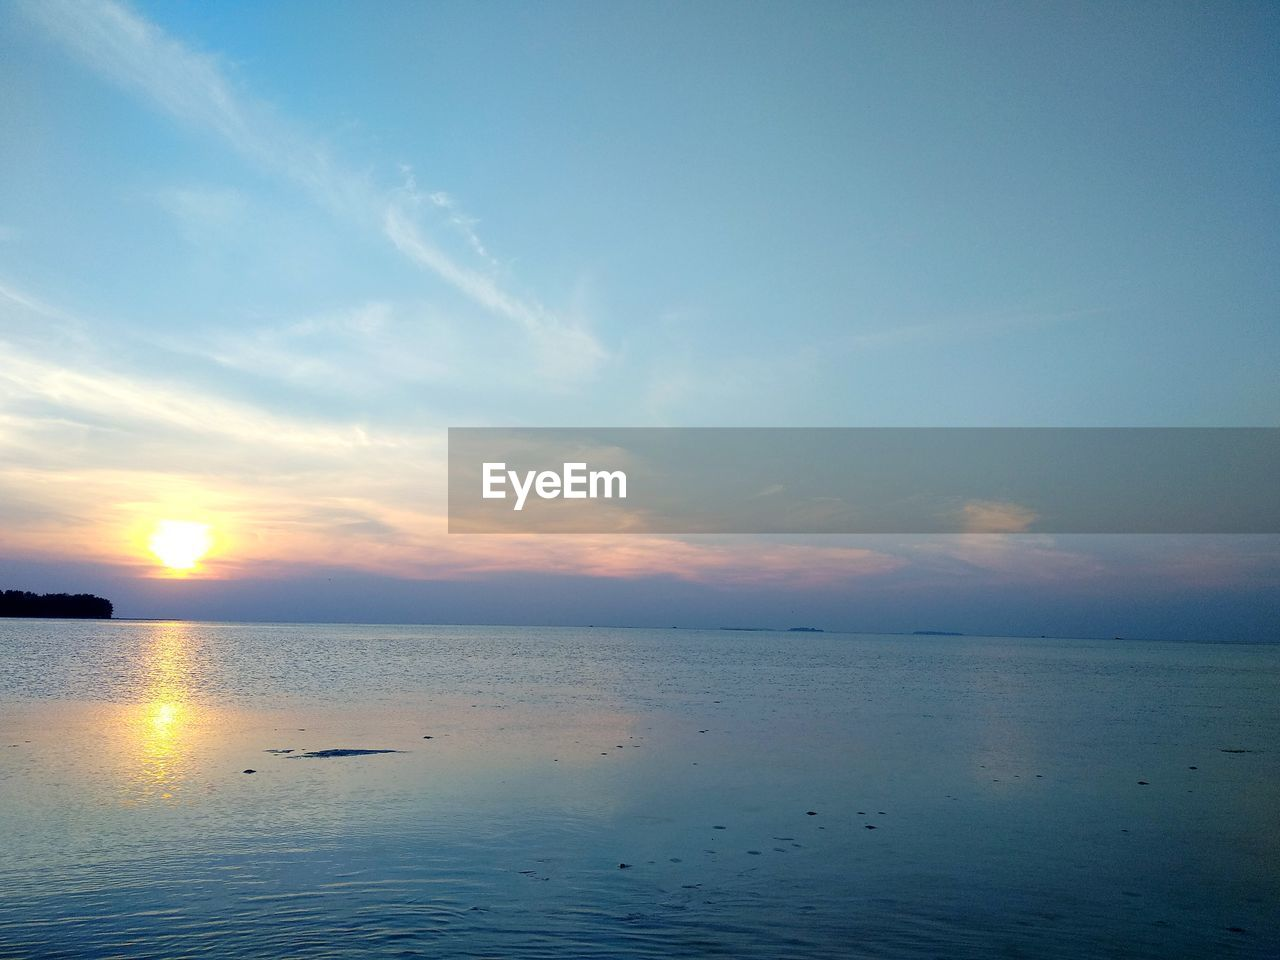 sky, water, scenics - nature, beauty in nature, sea, tranquil scene, tranquility, sunset, horizon, horizon over water, cloud - sky, idyllic, nature, no people, waterfront, non-urban scene, reflection, remote, outdoors